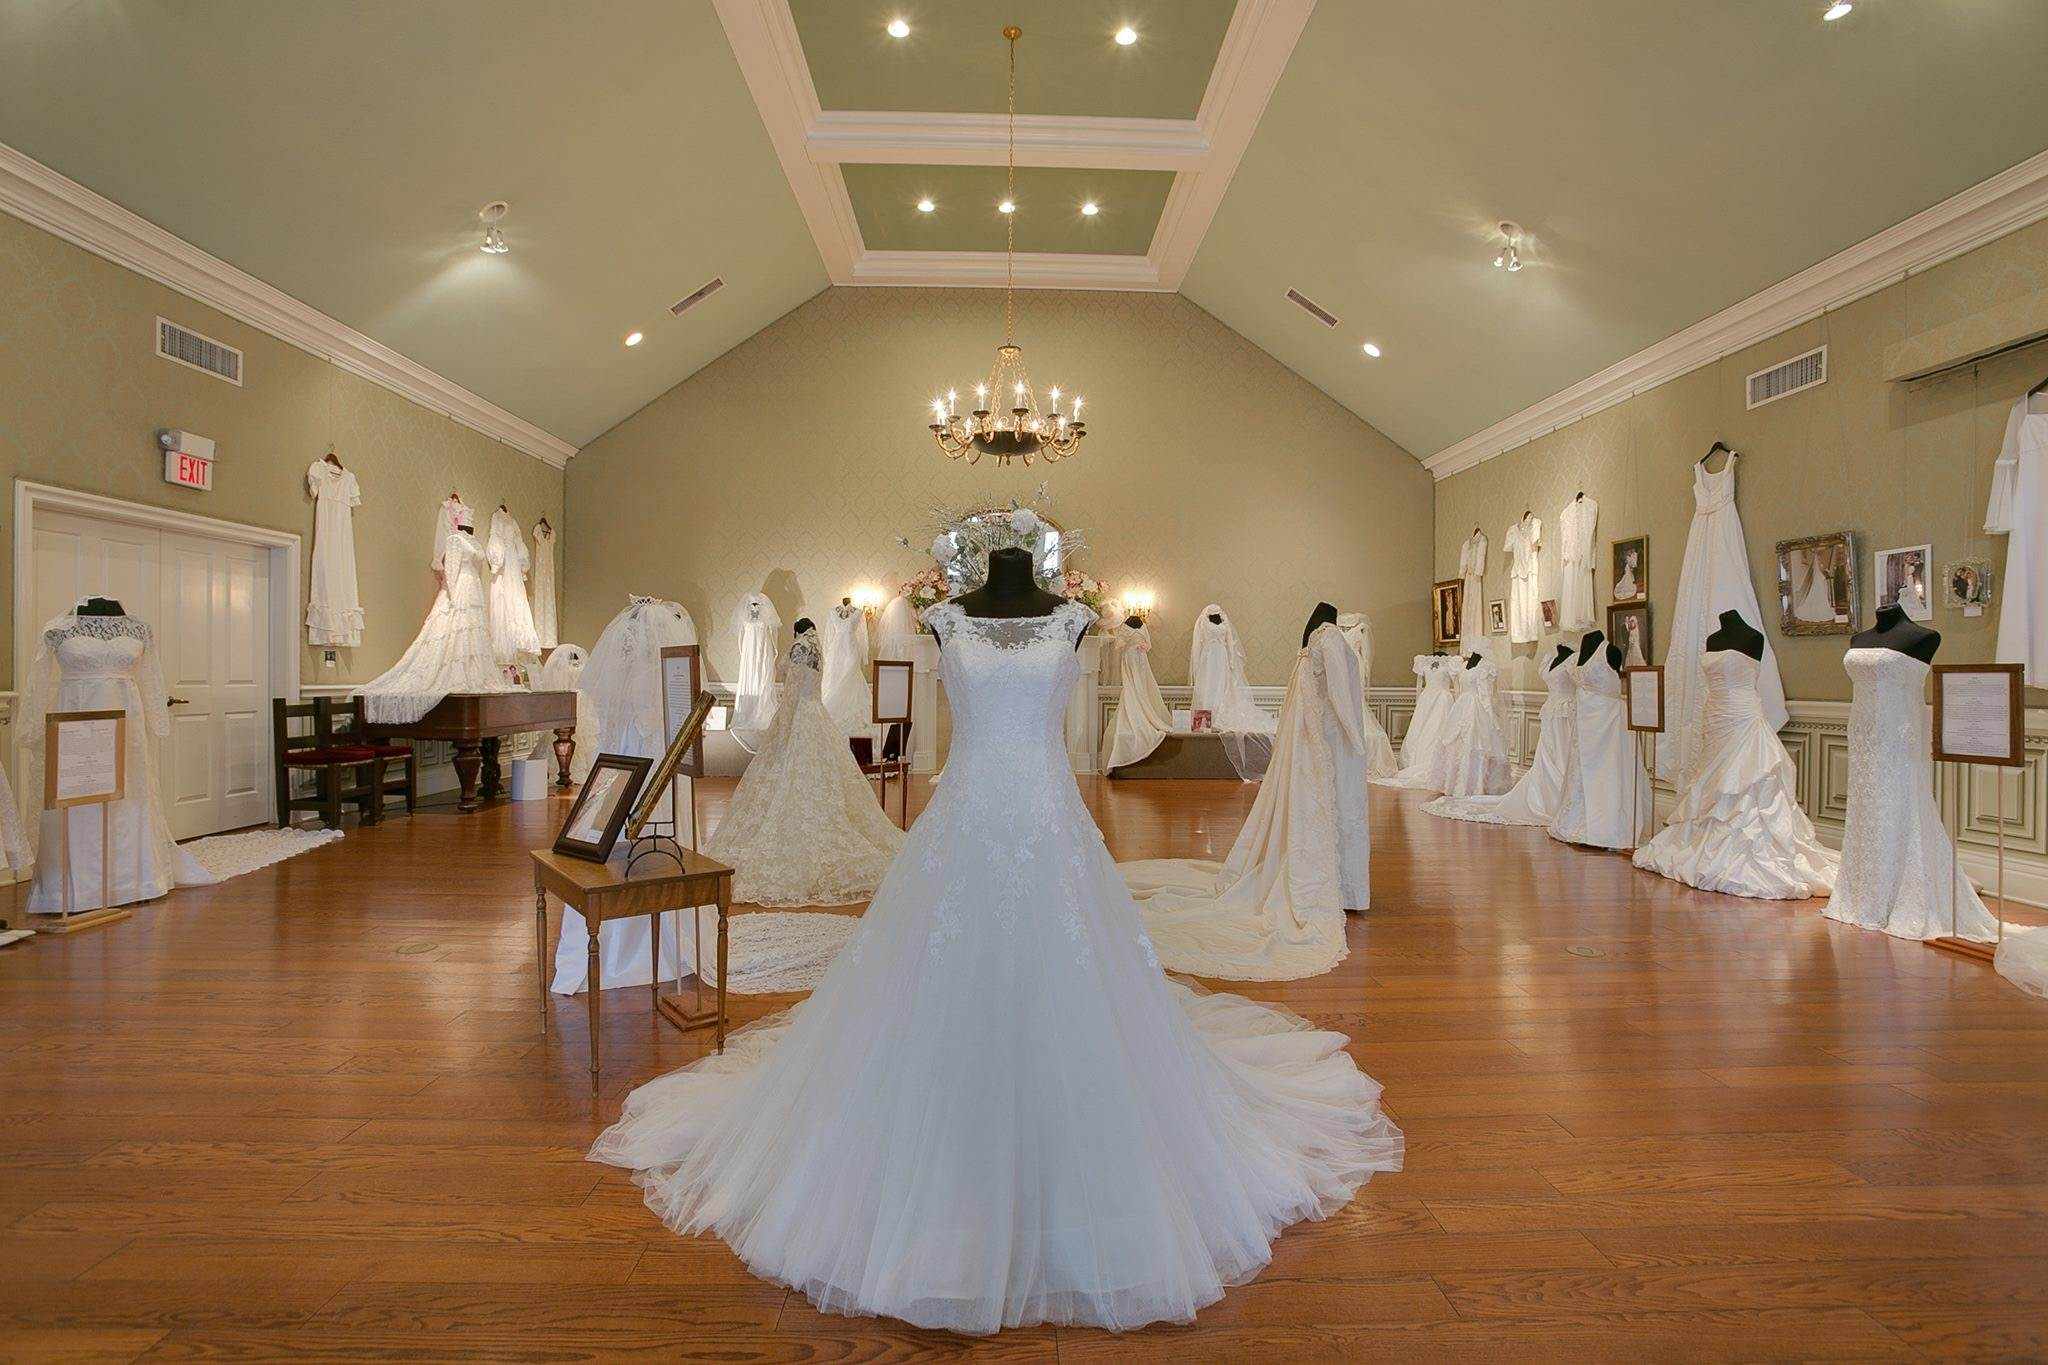 <br>5th Annual Wedding Dresses Through the Decades Exhibit<br>January 10 - March 6